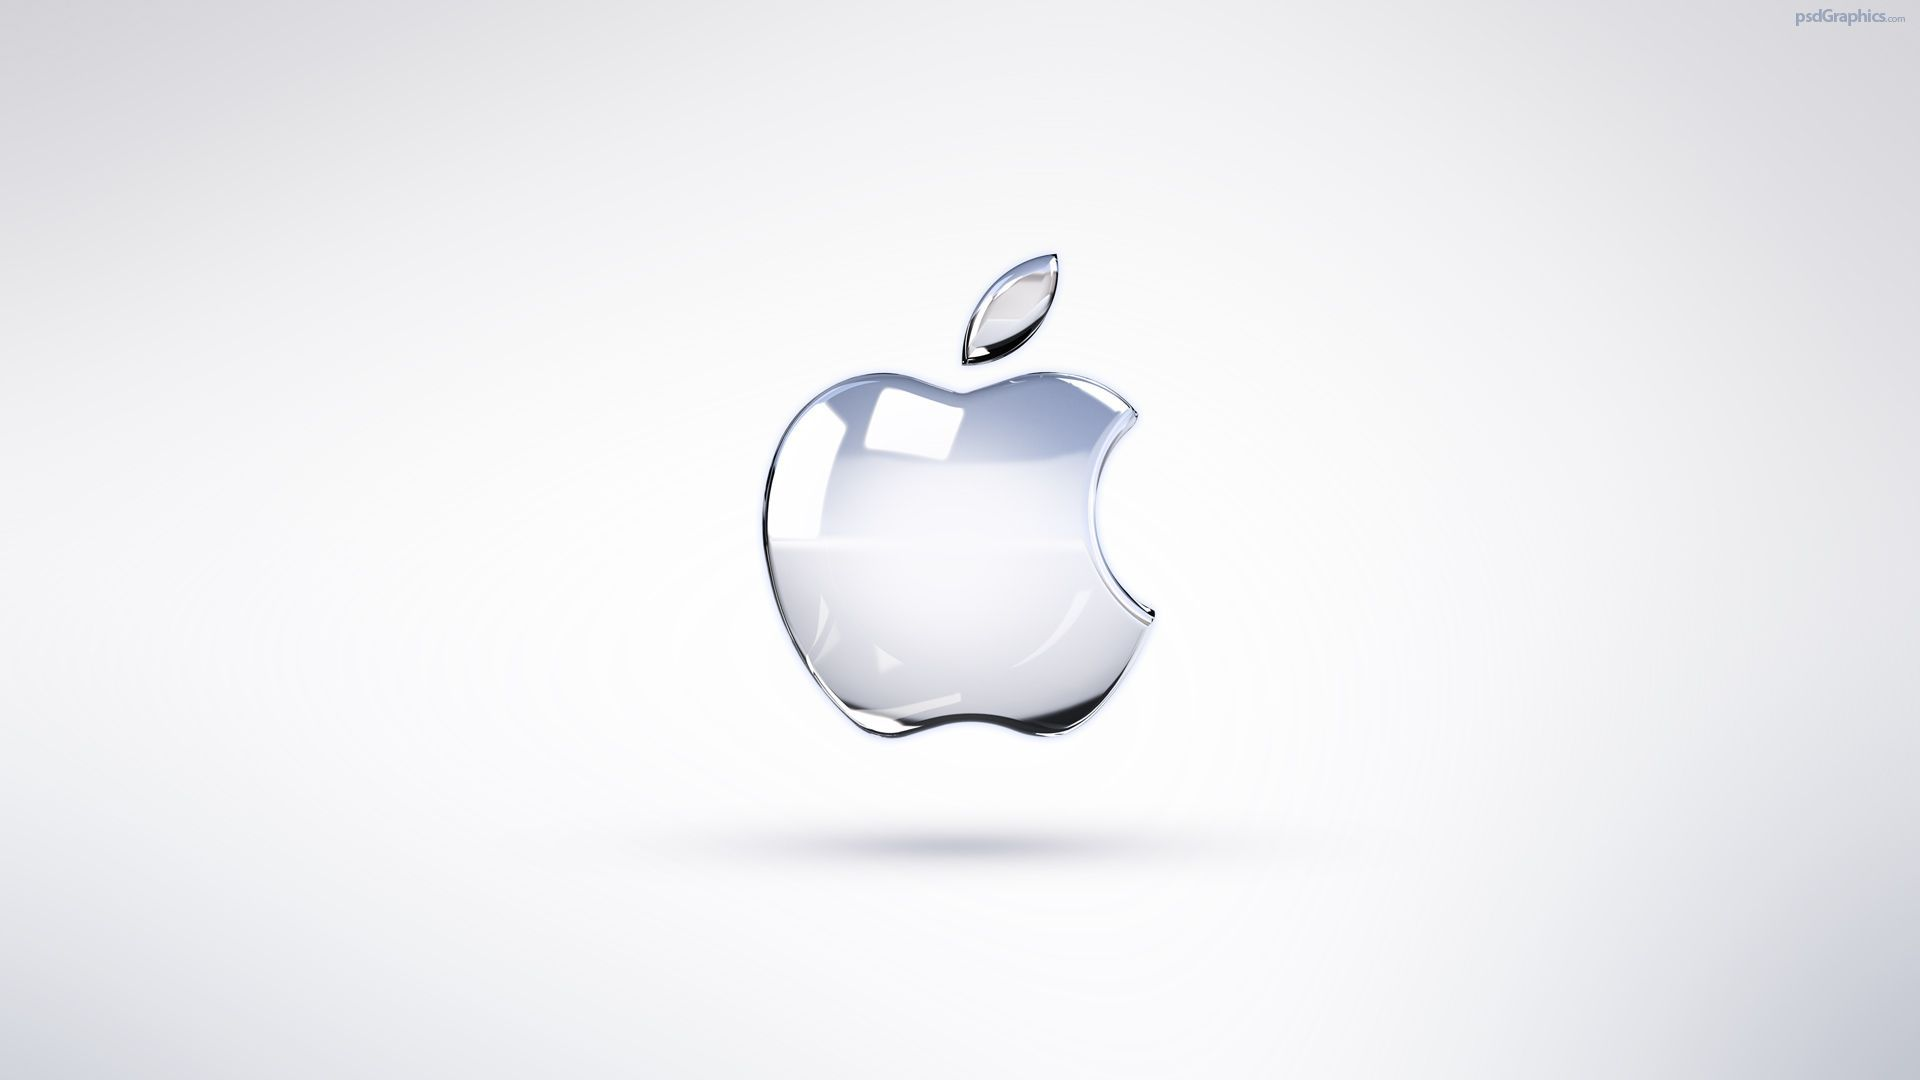 apple hd wallpapers 1080p